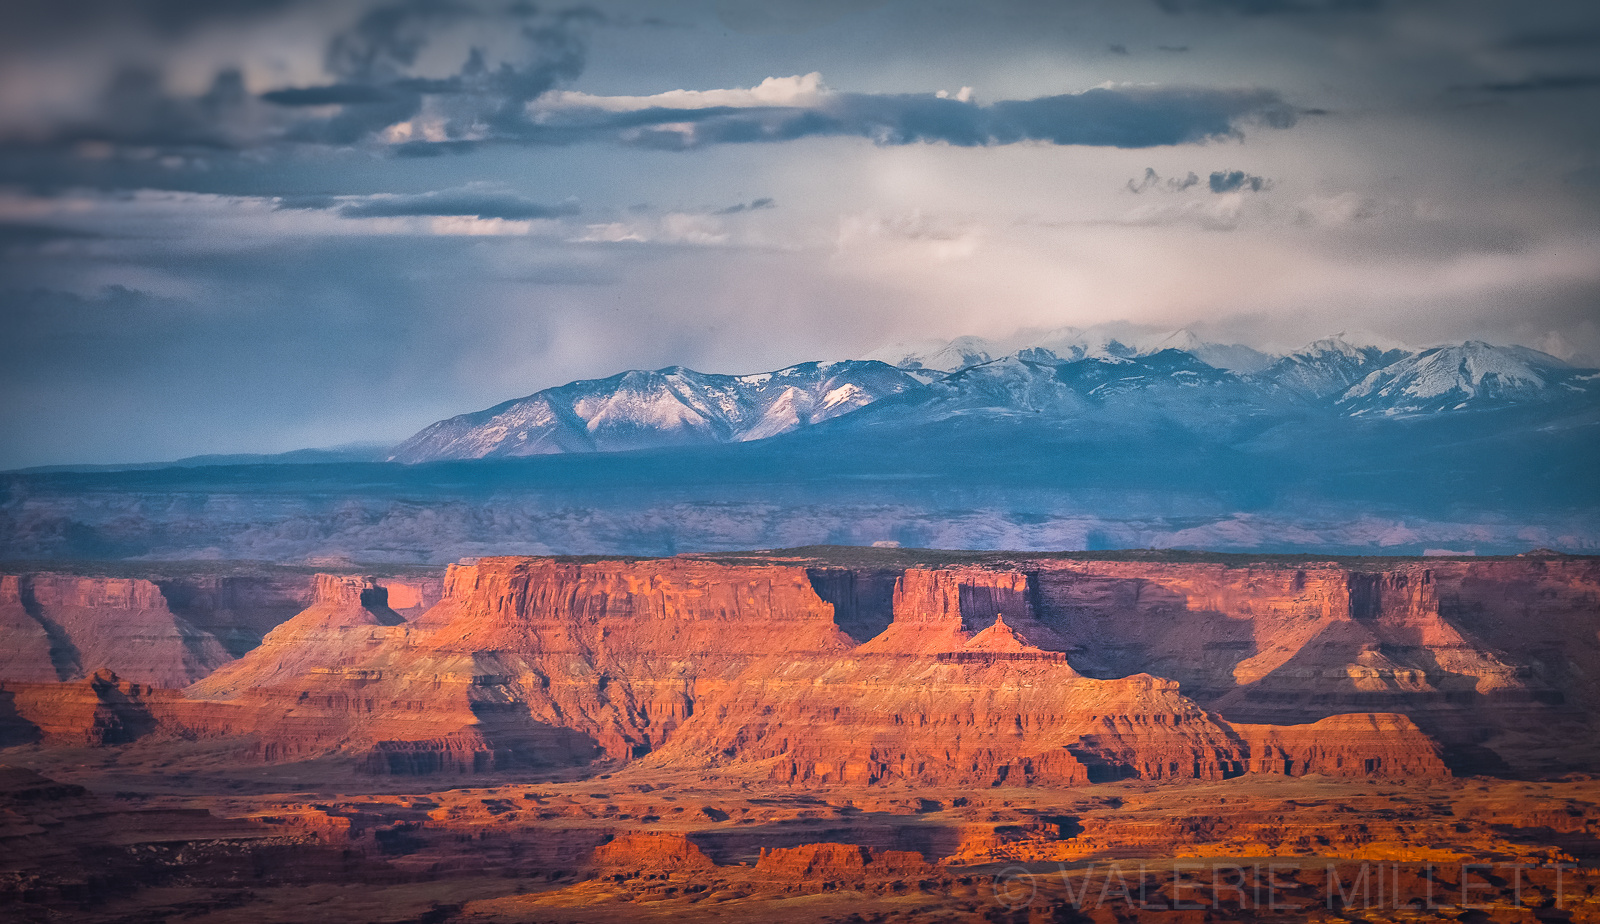 Romancing The Southwest: A Photographer's Love Letter